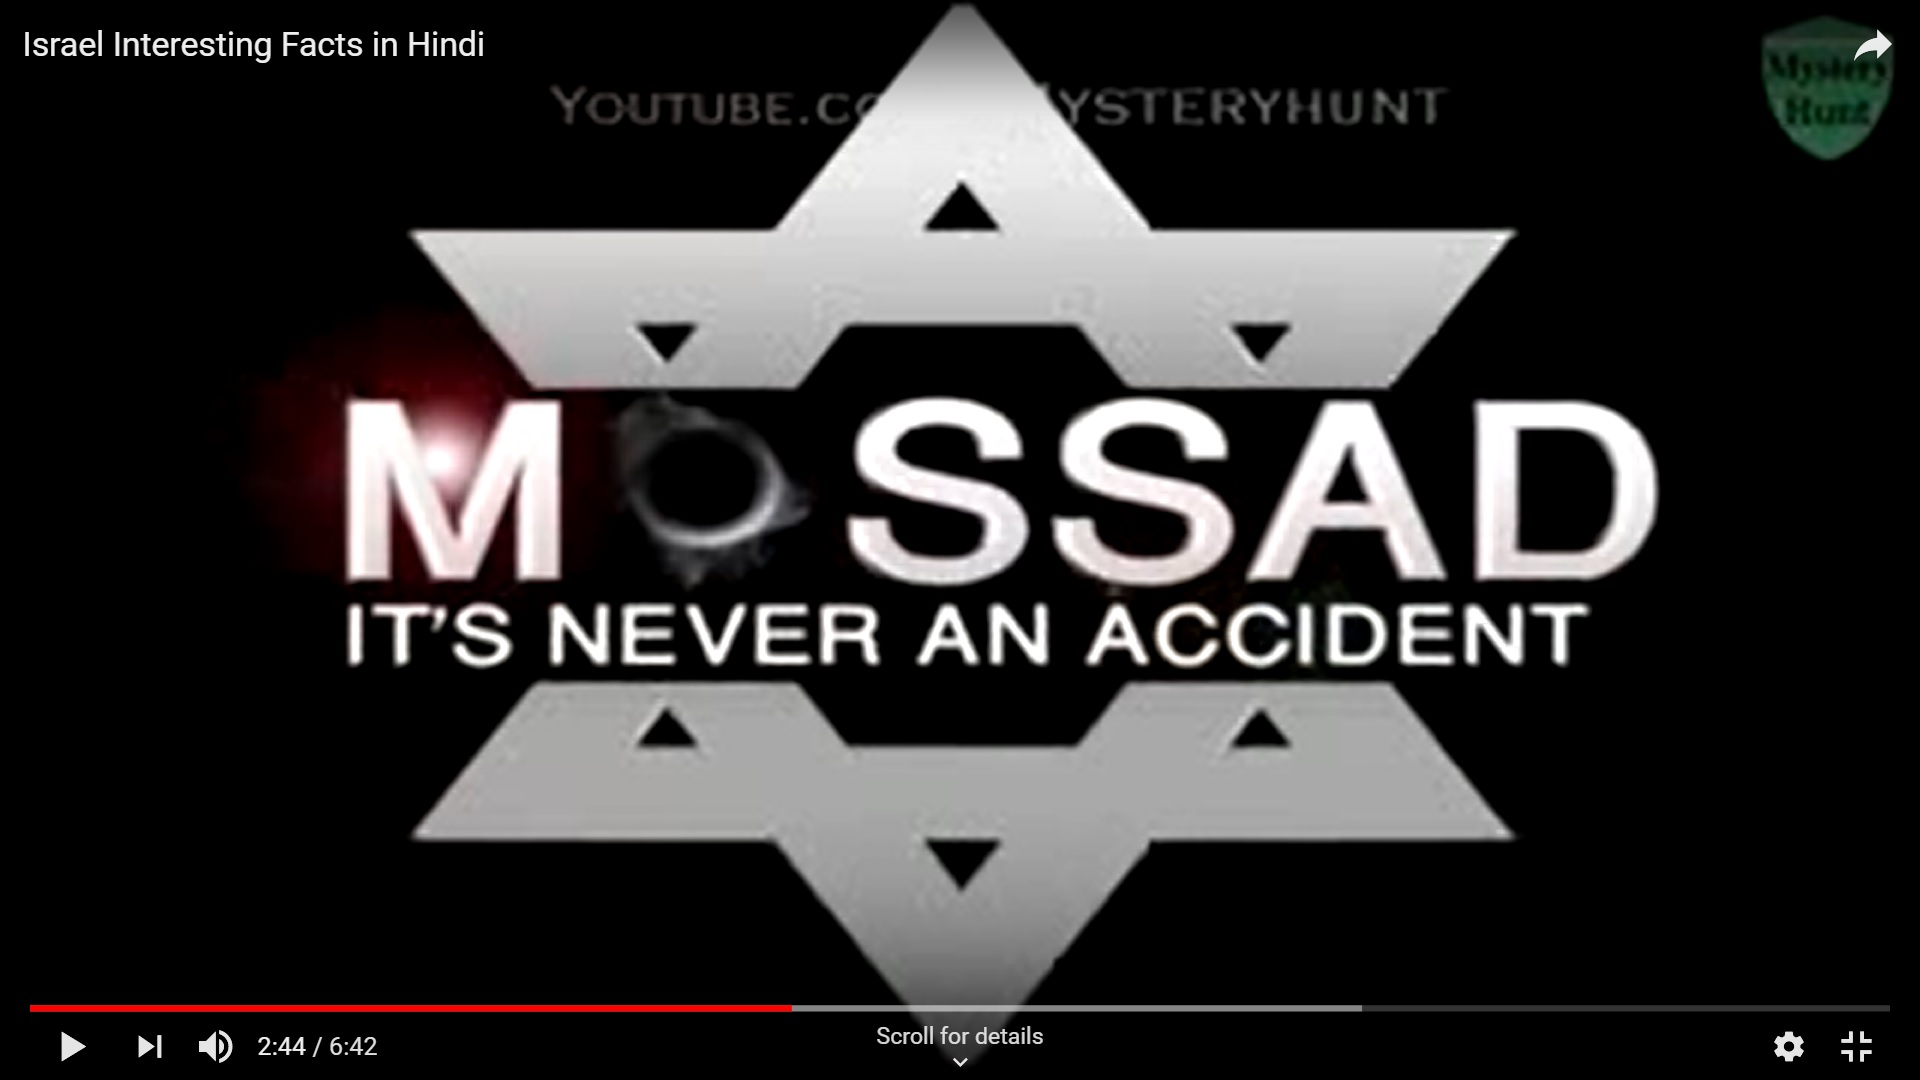 ISAREL AND MOSSAD INTERESTING FACTS IN HINDI